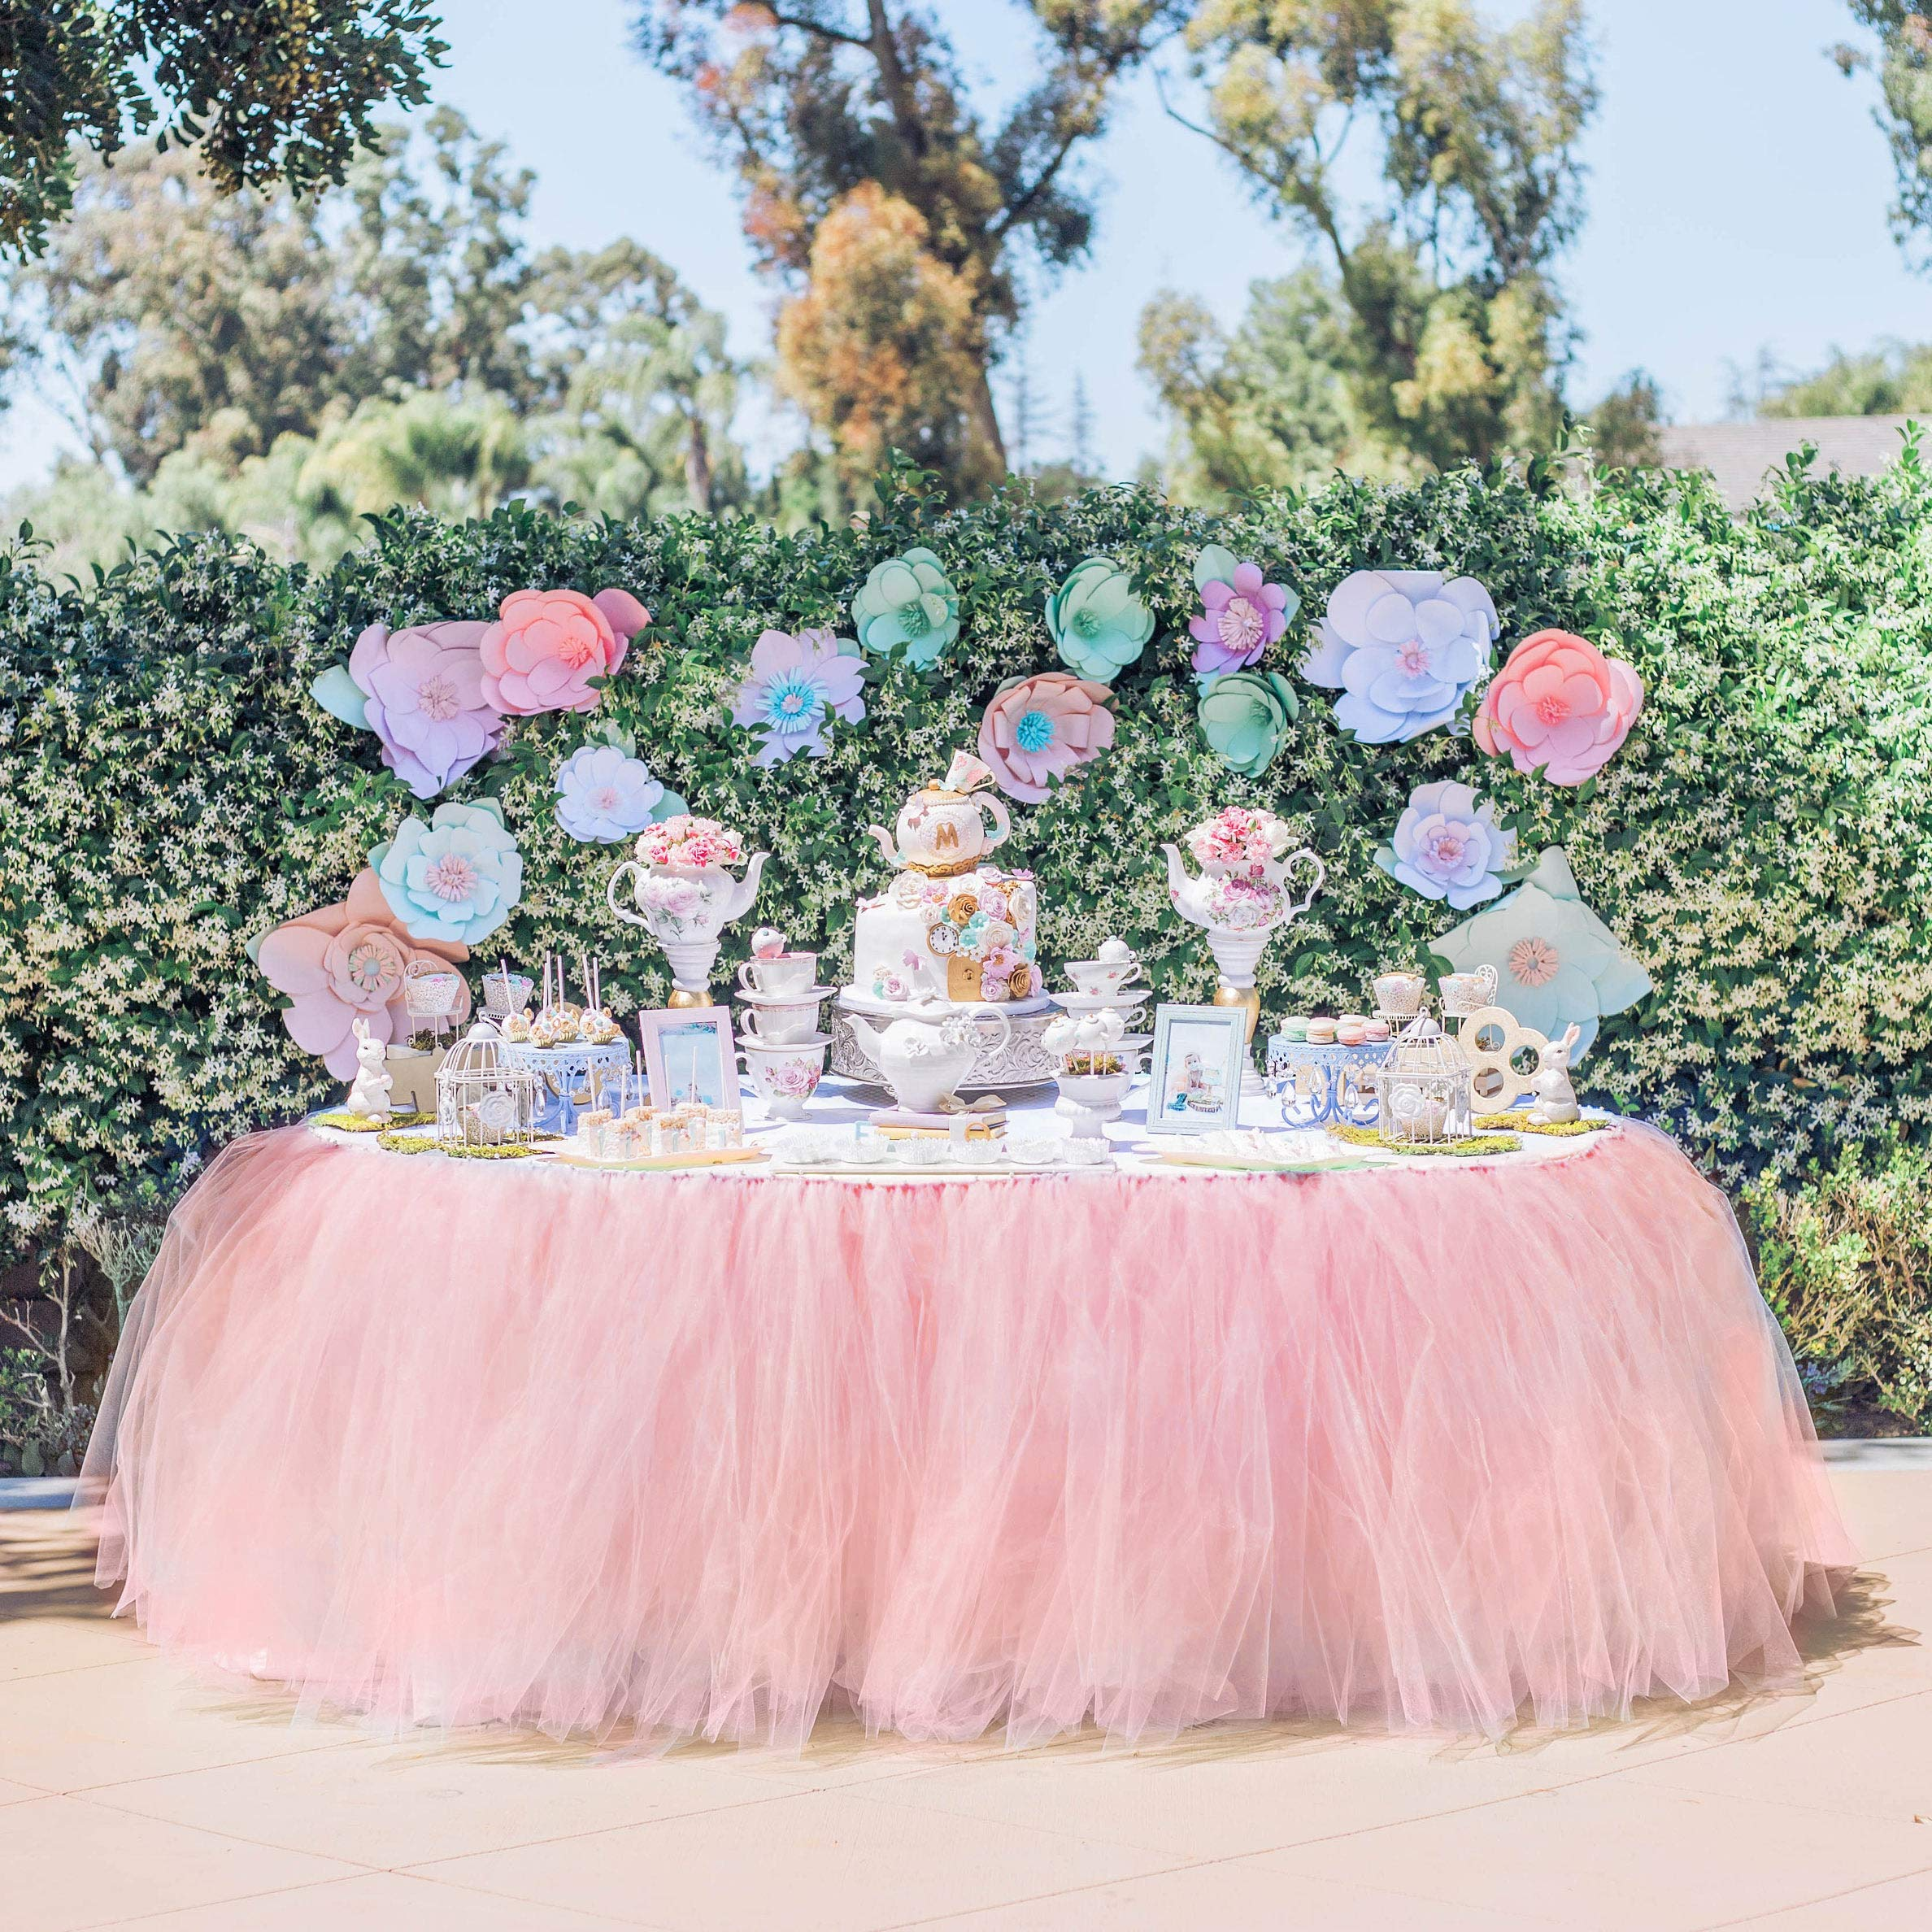 Tulle Table Skirt Tutu Table Skirts Wedding Tablecloth Birthday Baby Shower Party Table Skirting Table Decorations for Round Or Rectangle Tables 9ft (Pink, 9ft (L) x 30inch (H)) by Chic Chichi